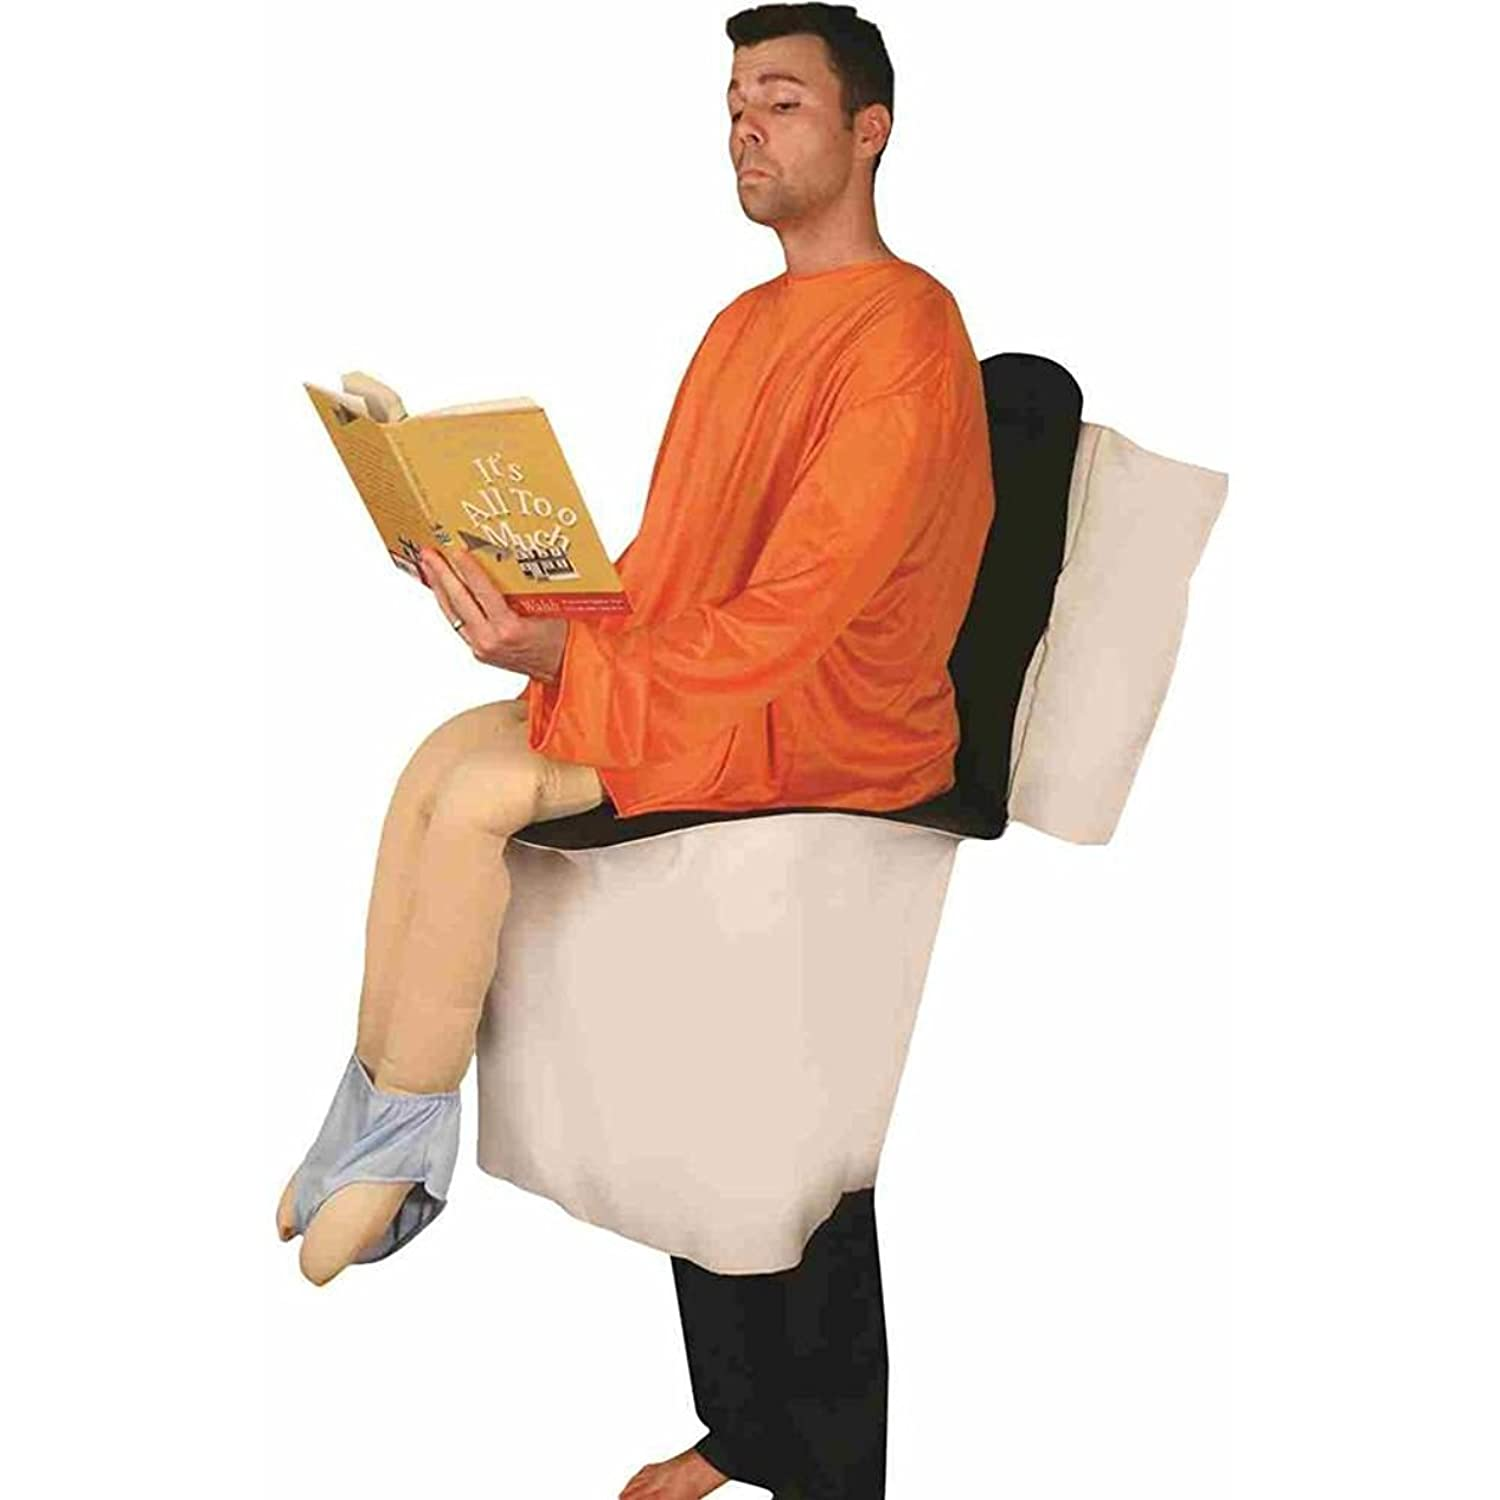 Amazon.com: Sitting on Toilet Funny Party Pooper Adult Costume ...